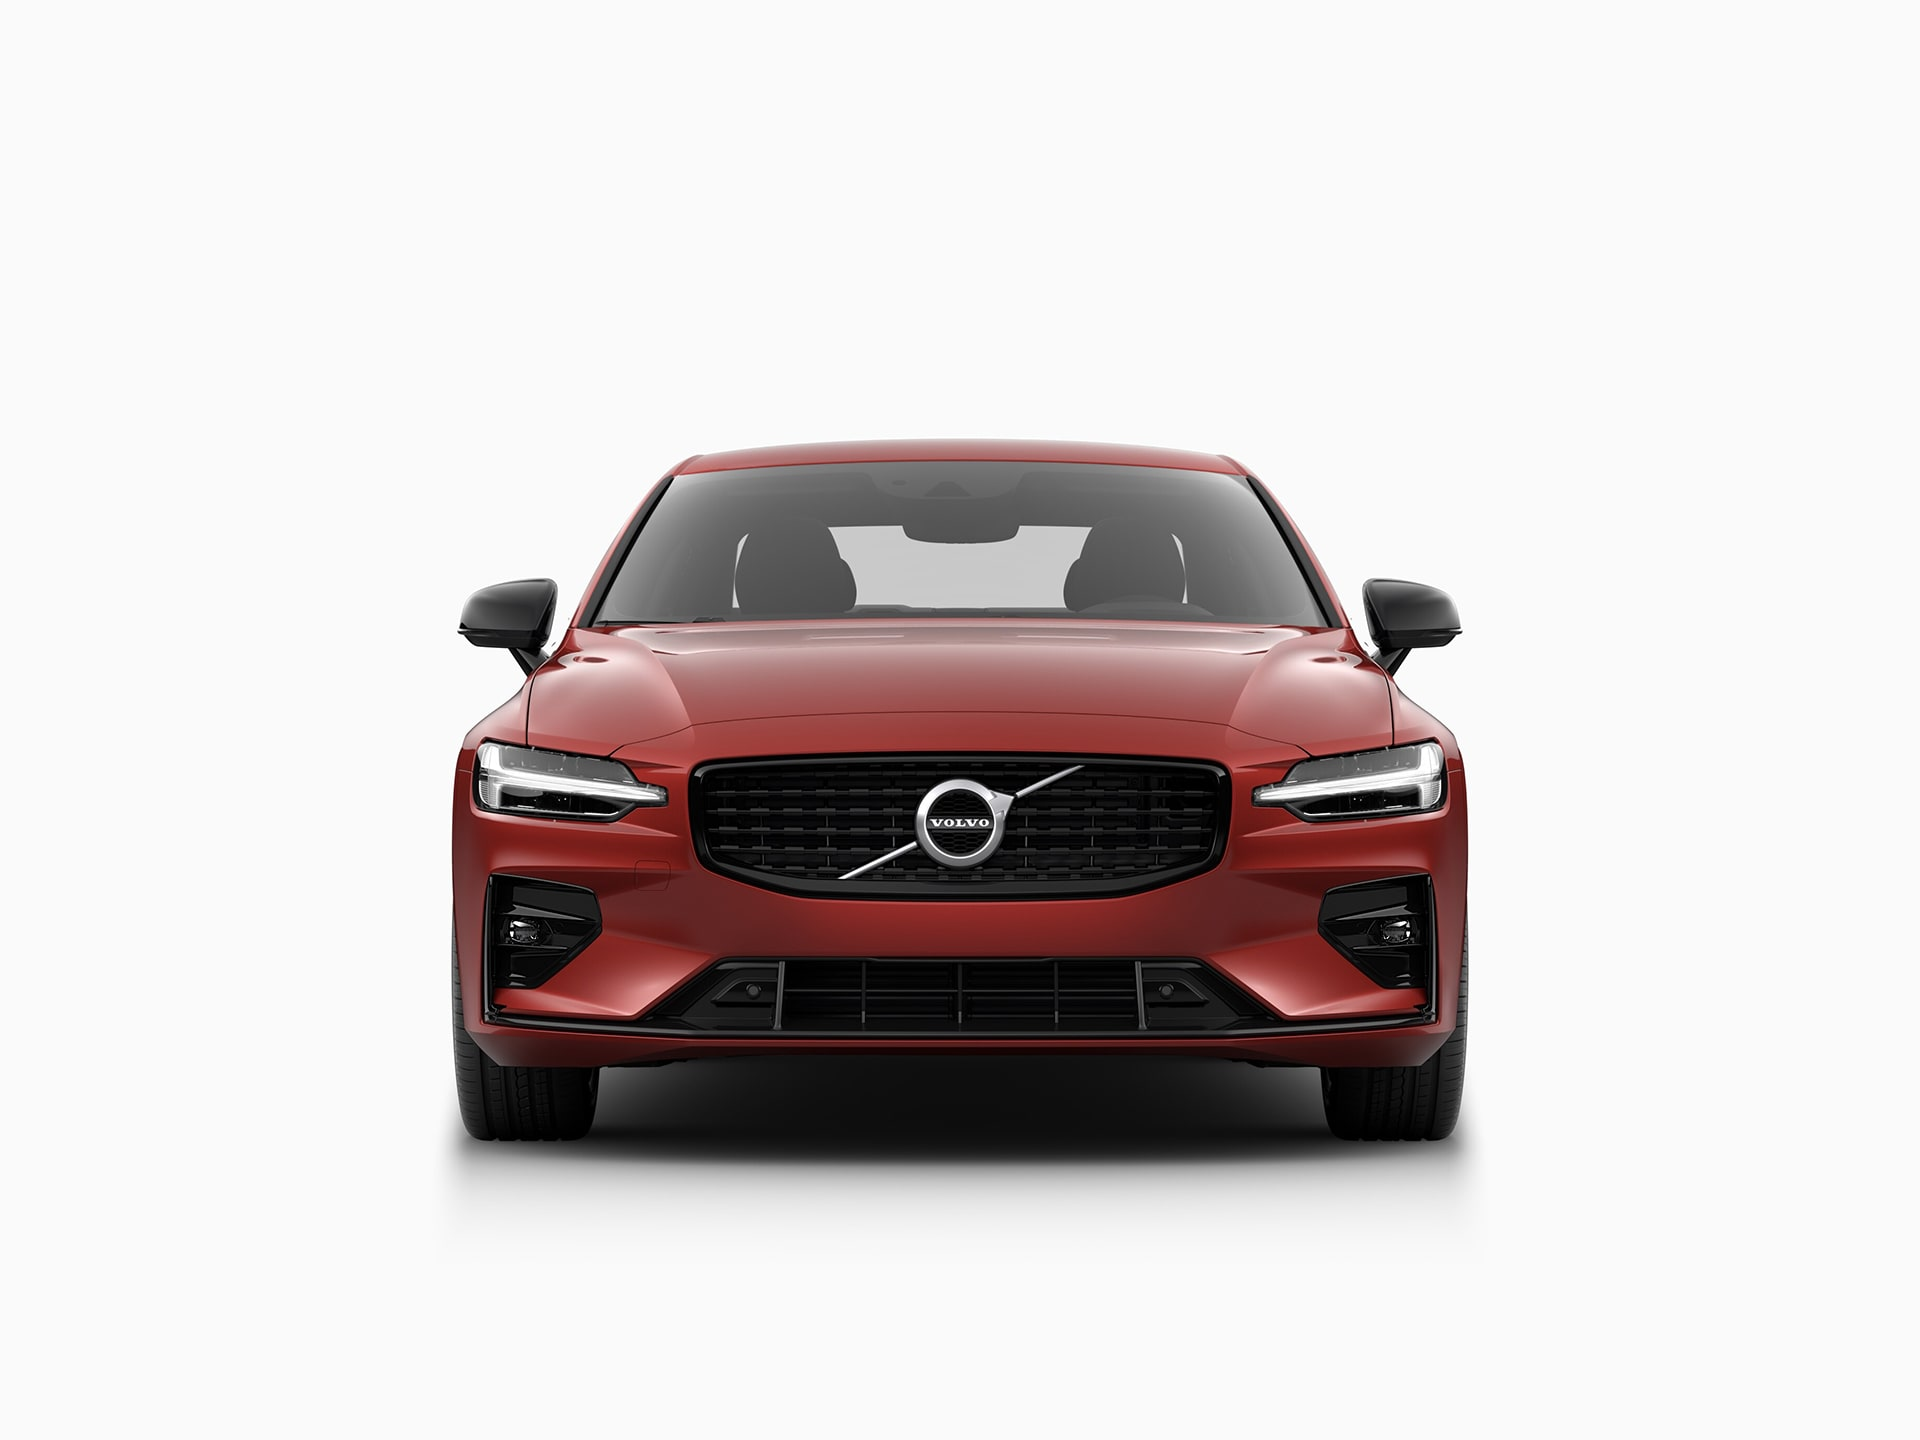 The front of a Volvo S60 sedan.